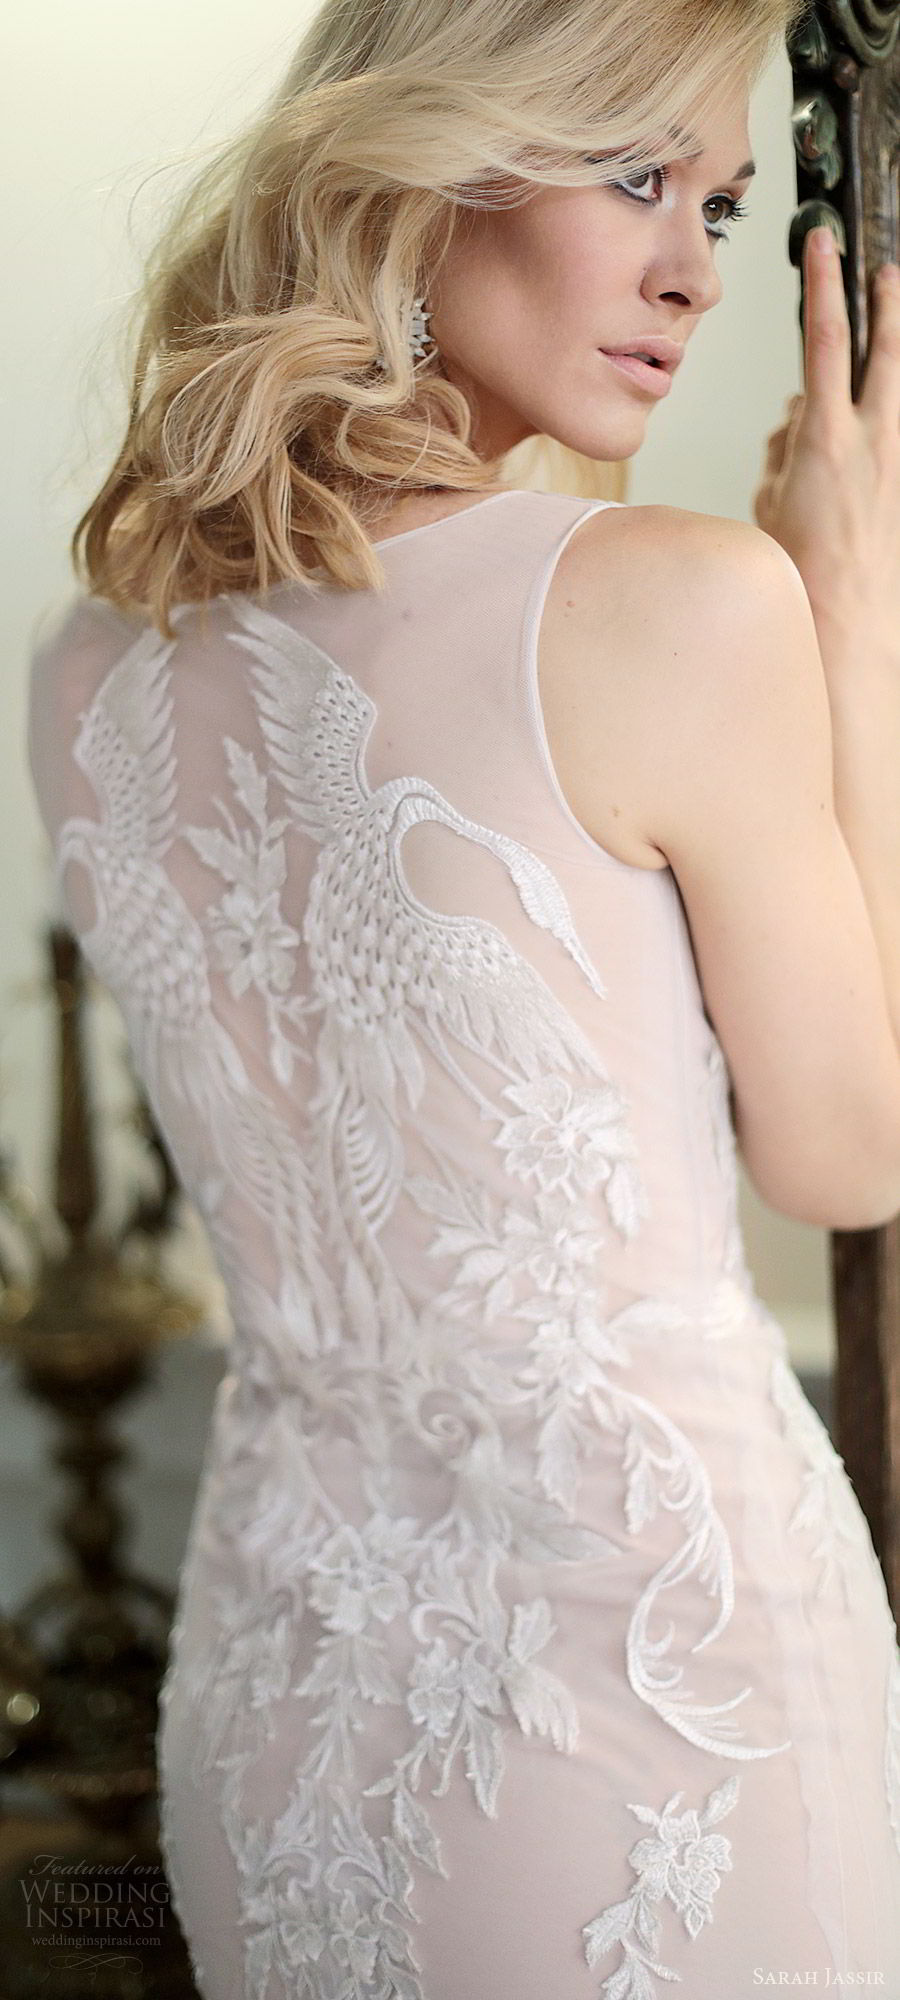 sarah jassir bridal 2018 sleeveless illusion straps sweetheart heavily embellished lace sheath wedding dress (swan) zbv blush sweep train modern elegant